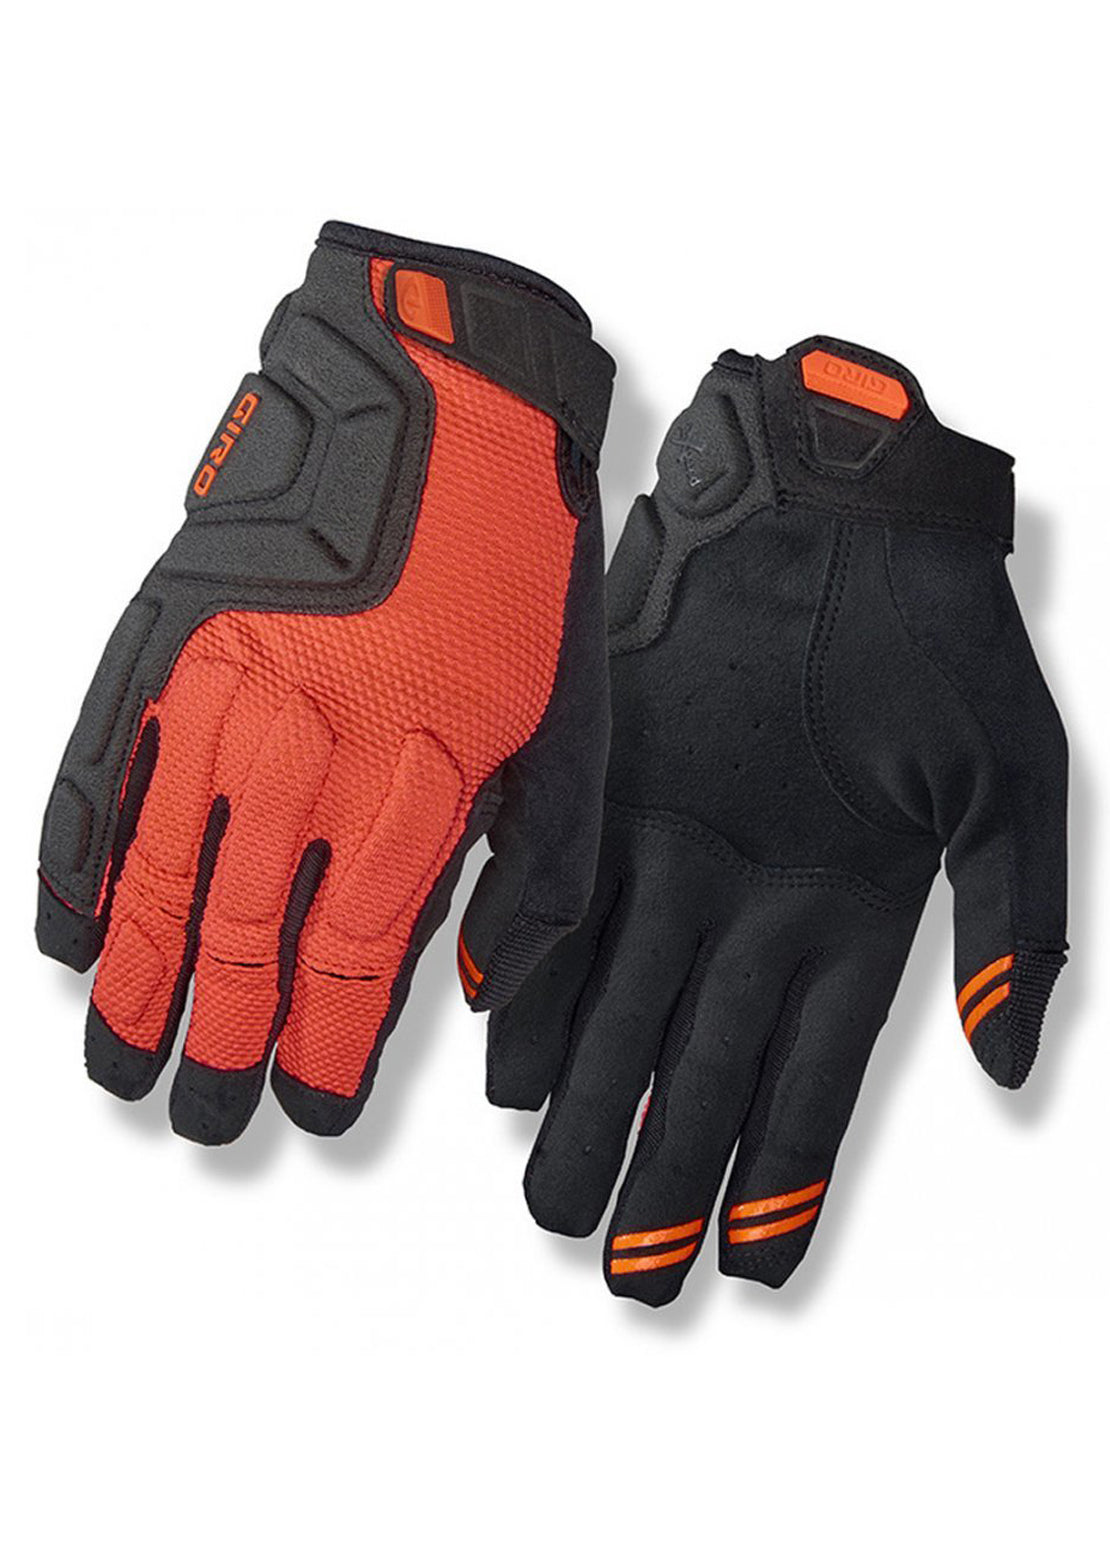 Giro Men's Remedy X2 Bike Gloves Vermillon